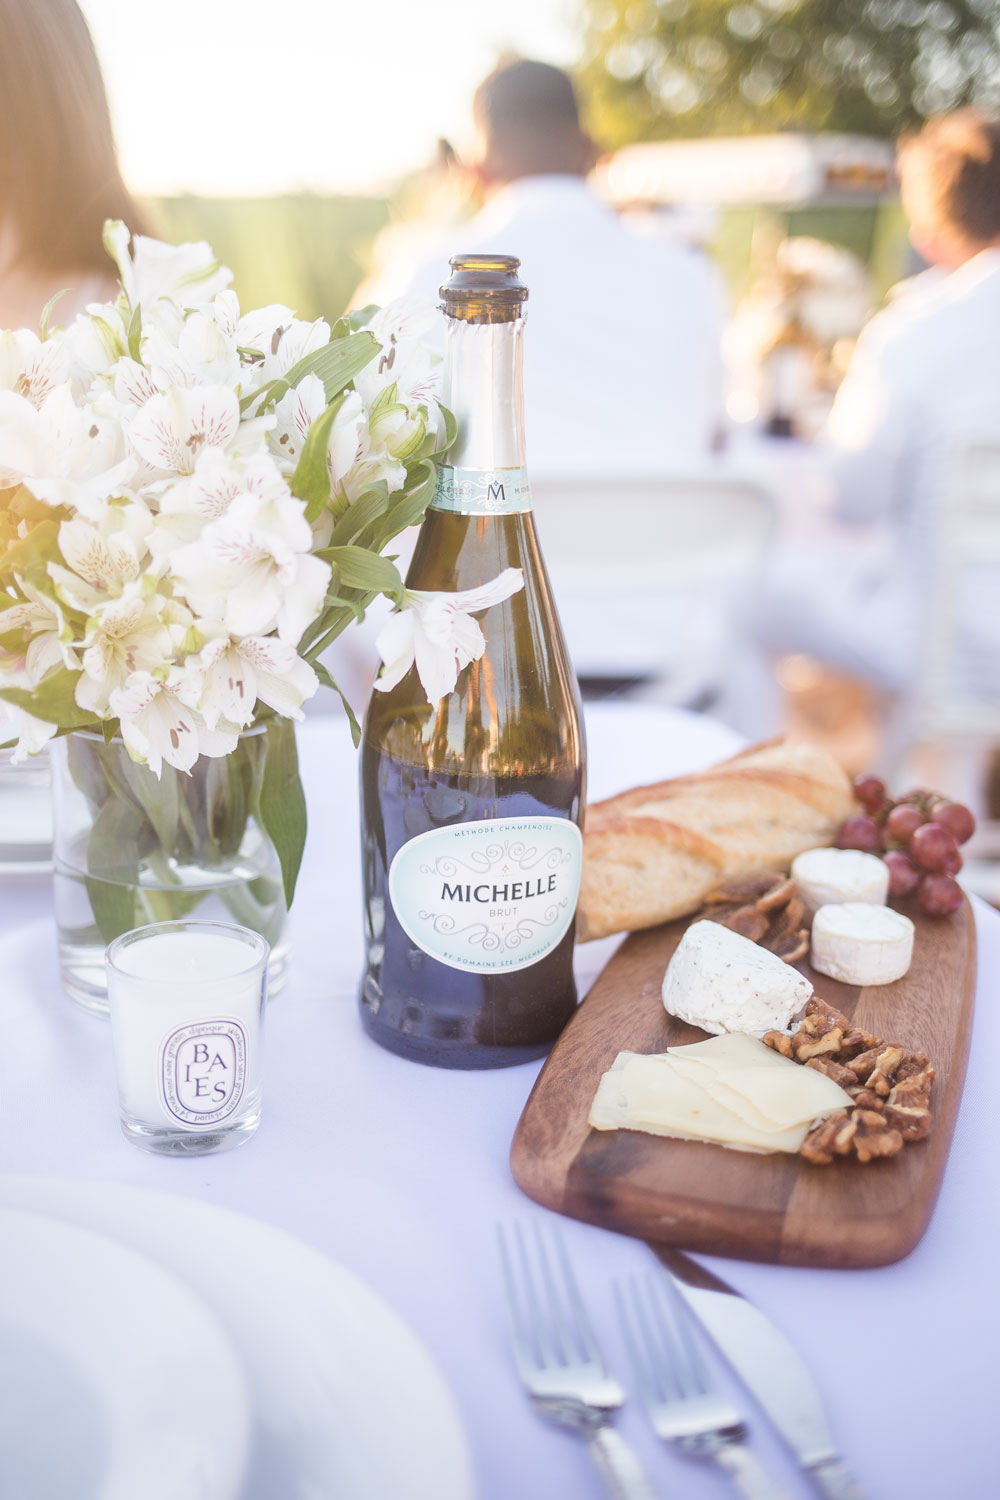 Le Diner en Blanc Eats: Champagne and Cheese Plate // Hello Rigby Seattle Lifestyle Blog